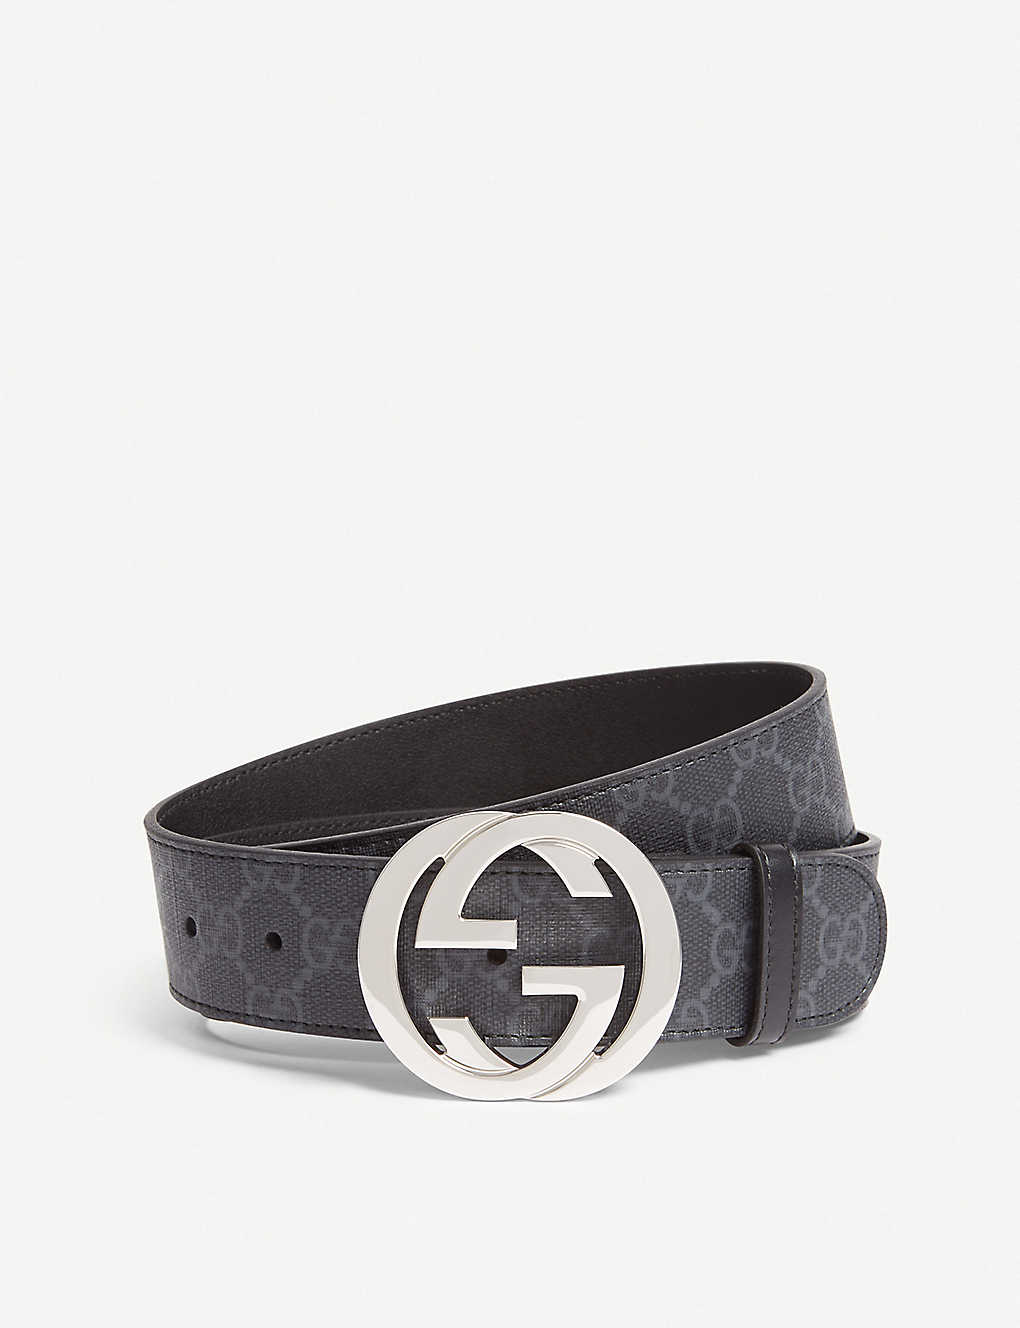 c3db1f628 GUCCI - GG Supreme belt | Selfridges.com